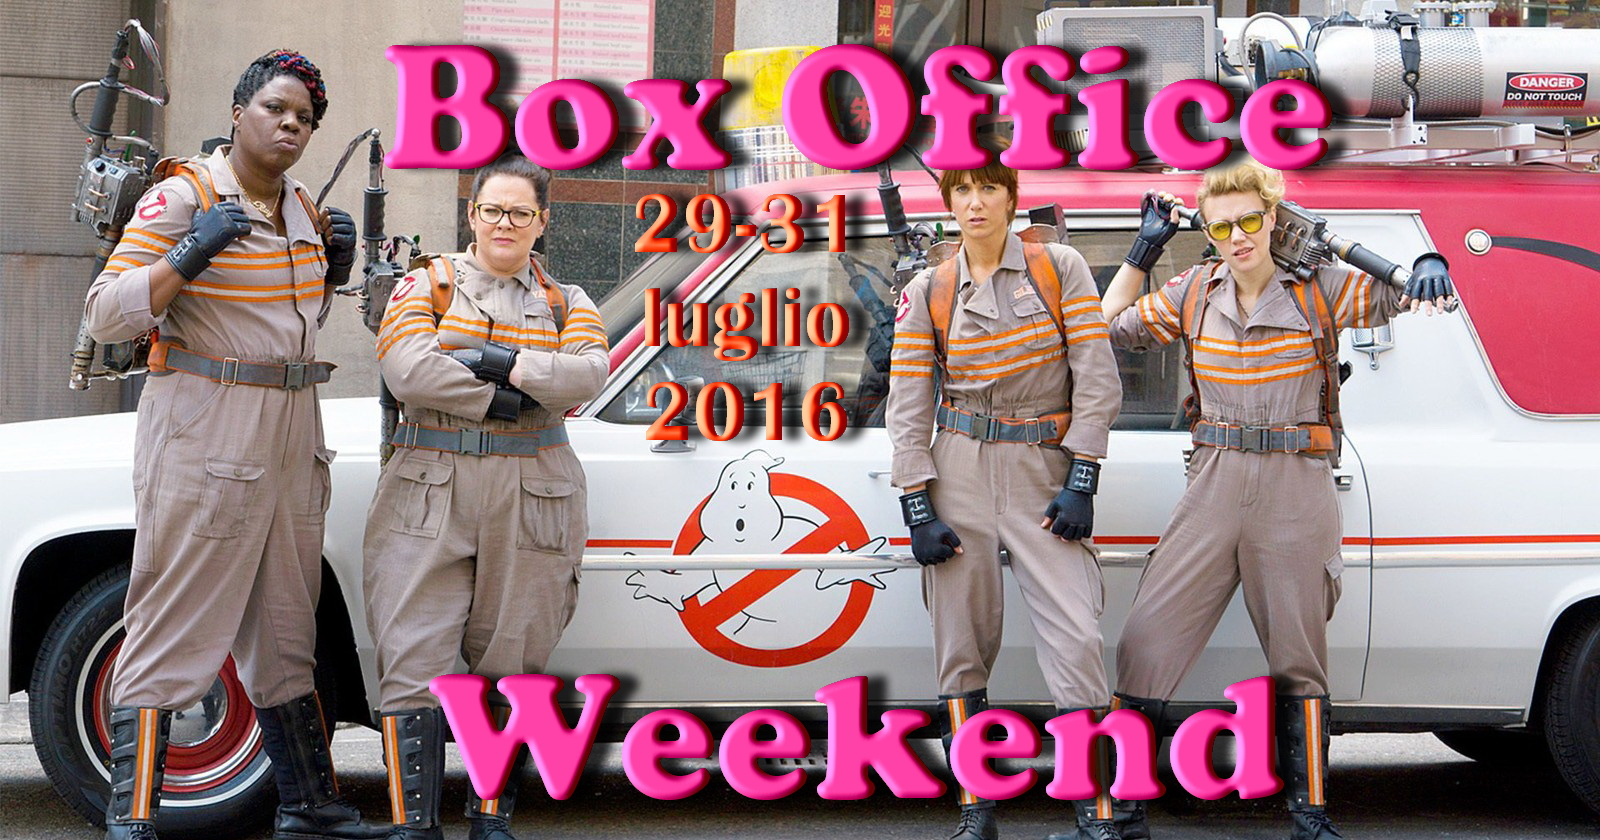 box office weekend le ghostbusters in testa ma il botto. Black Bedroom Furniture Sets. Home Design Ideas